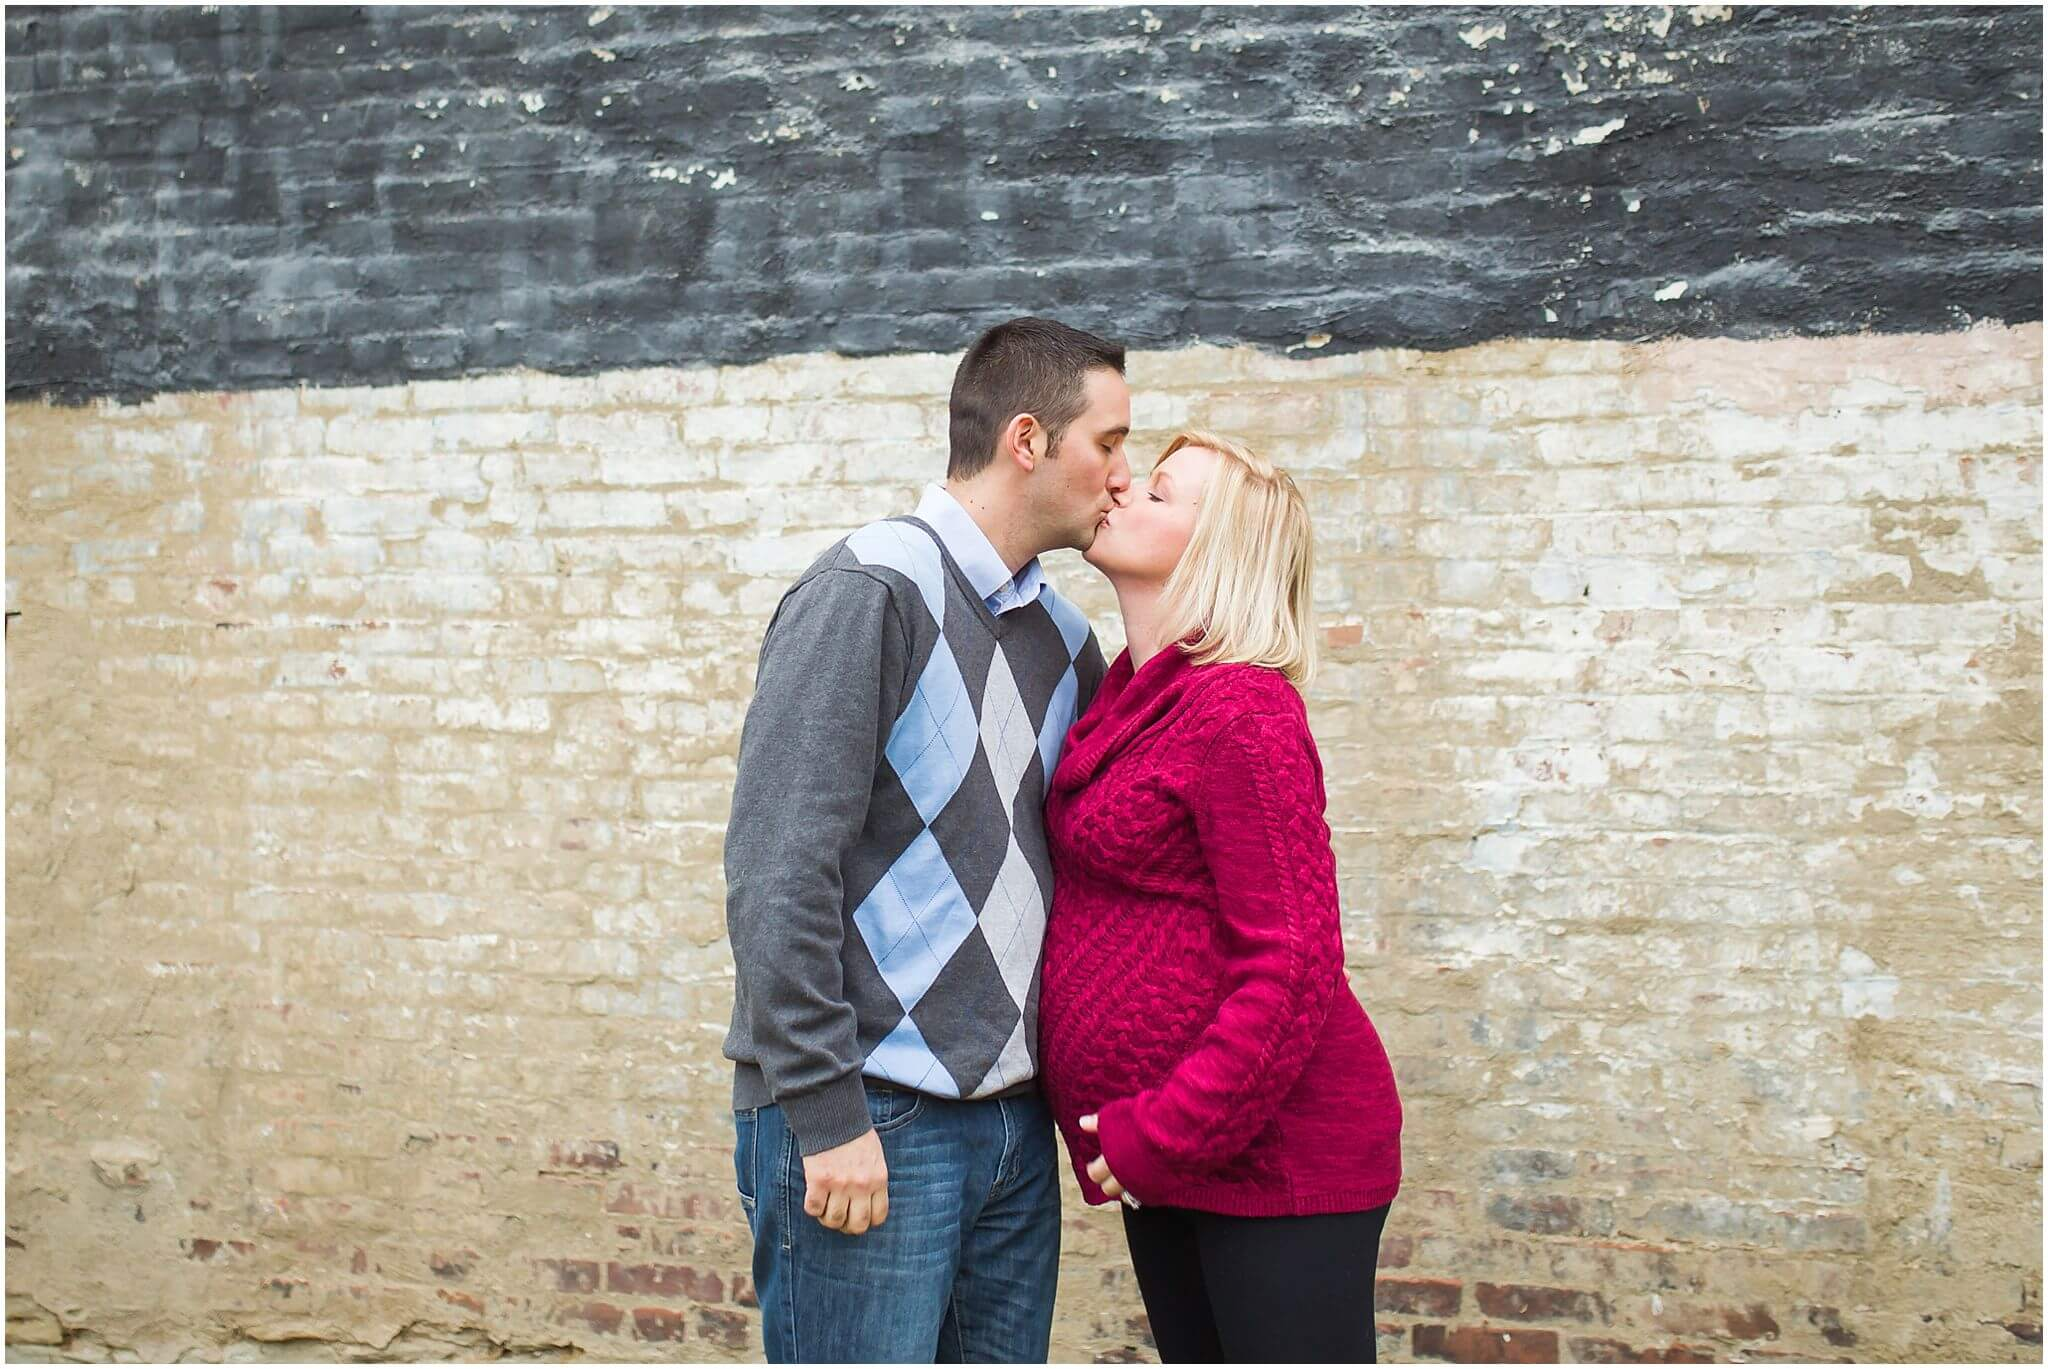 pittsburgh maternity portrait session jaclyn and thomas, kissing in front of a tall brick wall in pittsburgh.